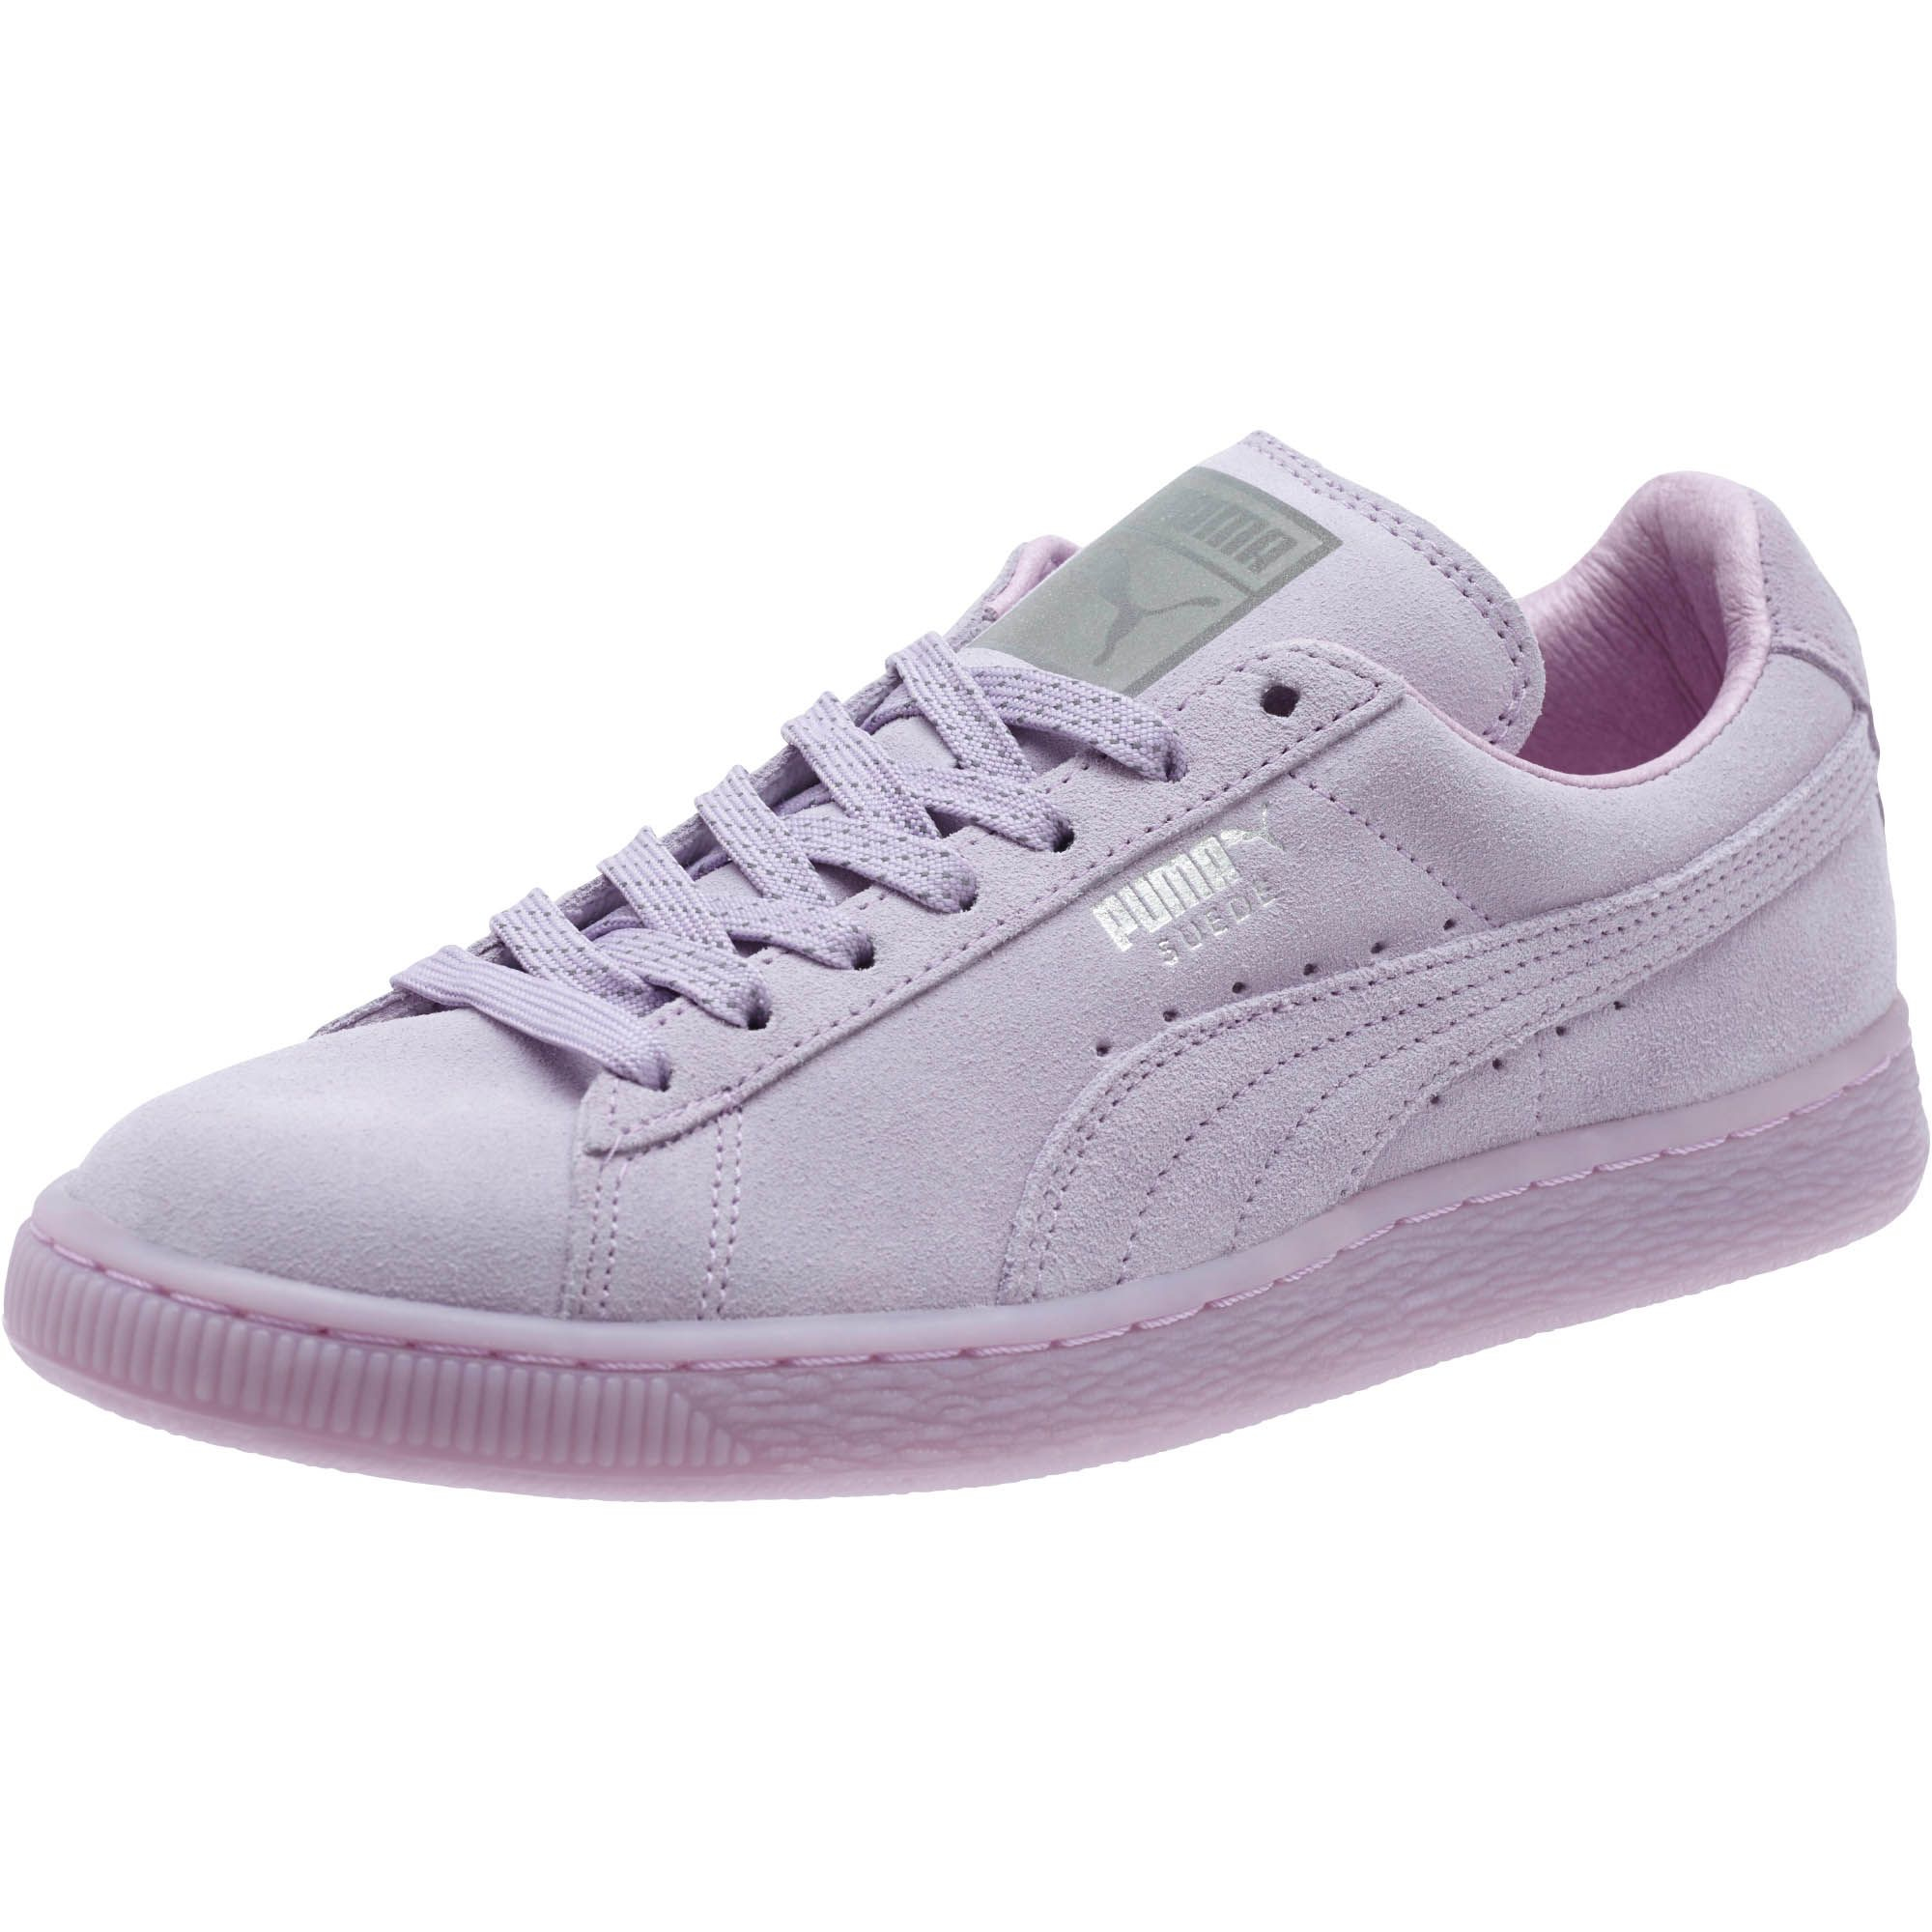 Lyst - PUMA Suede Classic Mono Iced Women s Sneakers 5514ef367